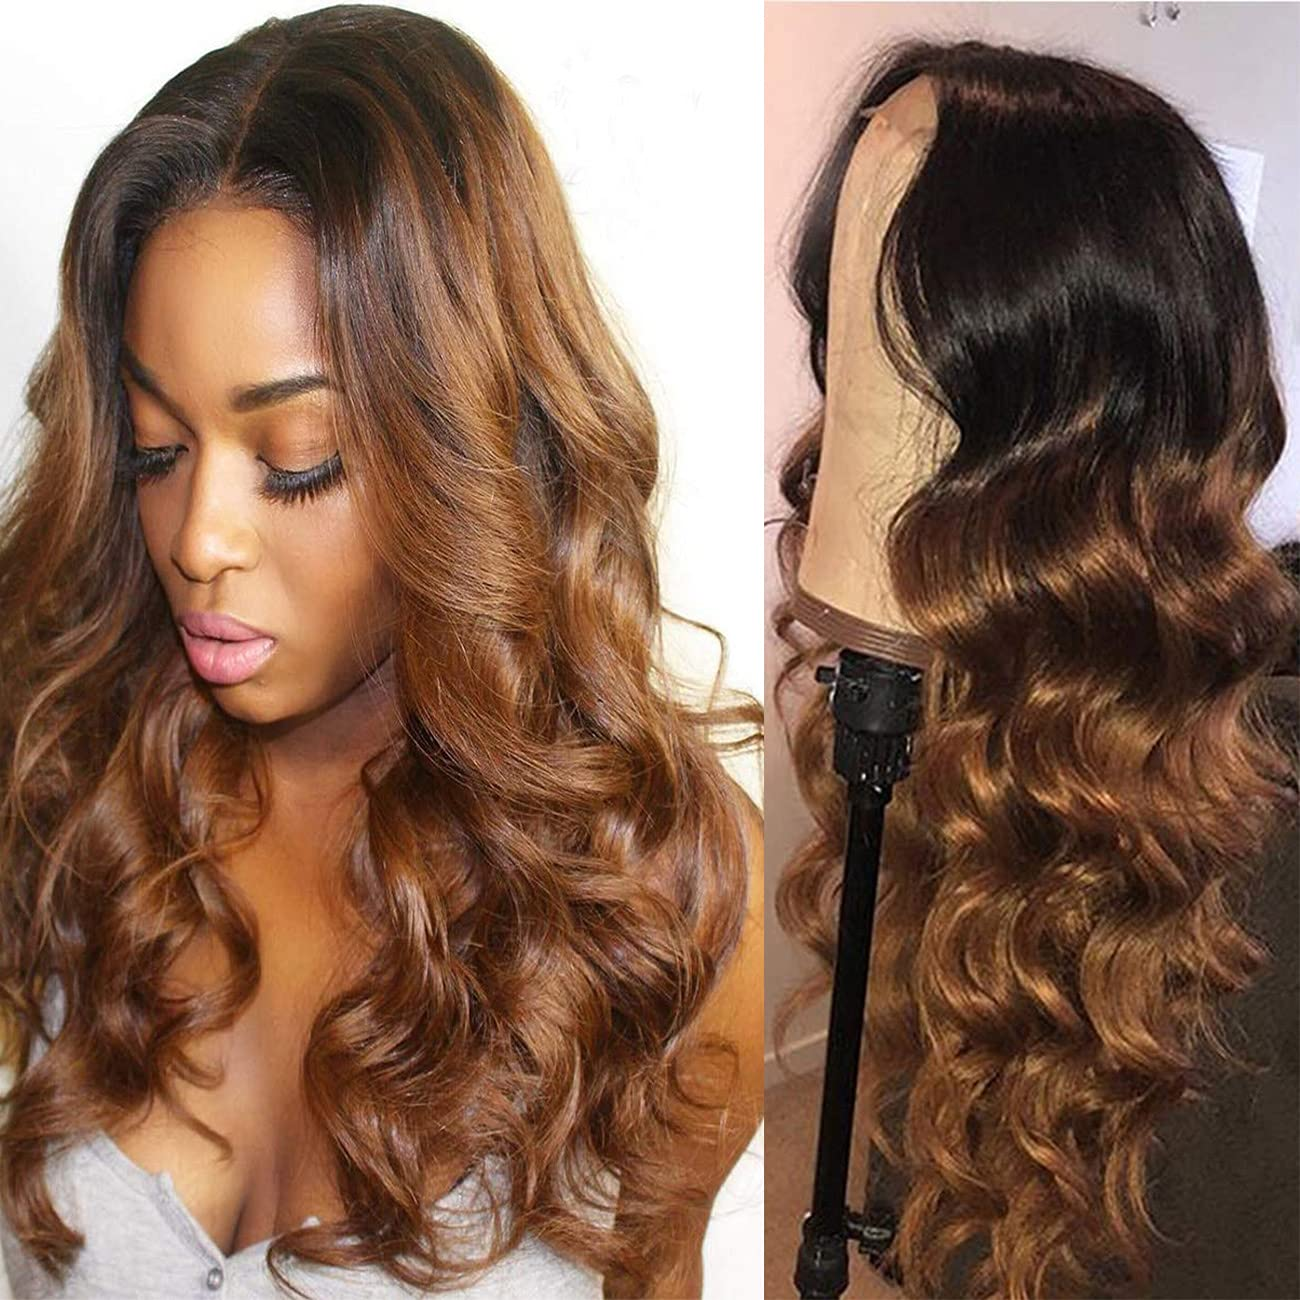 Body Wave Lace Front Max 89% OFF Wigs 4x4 Superlatite Hair Human Colored